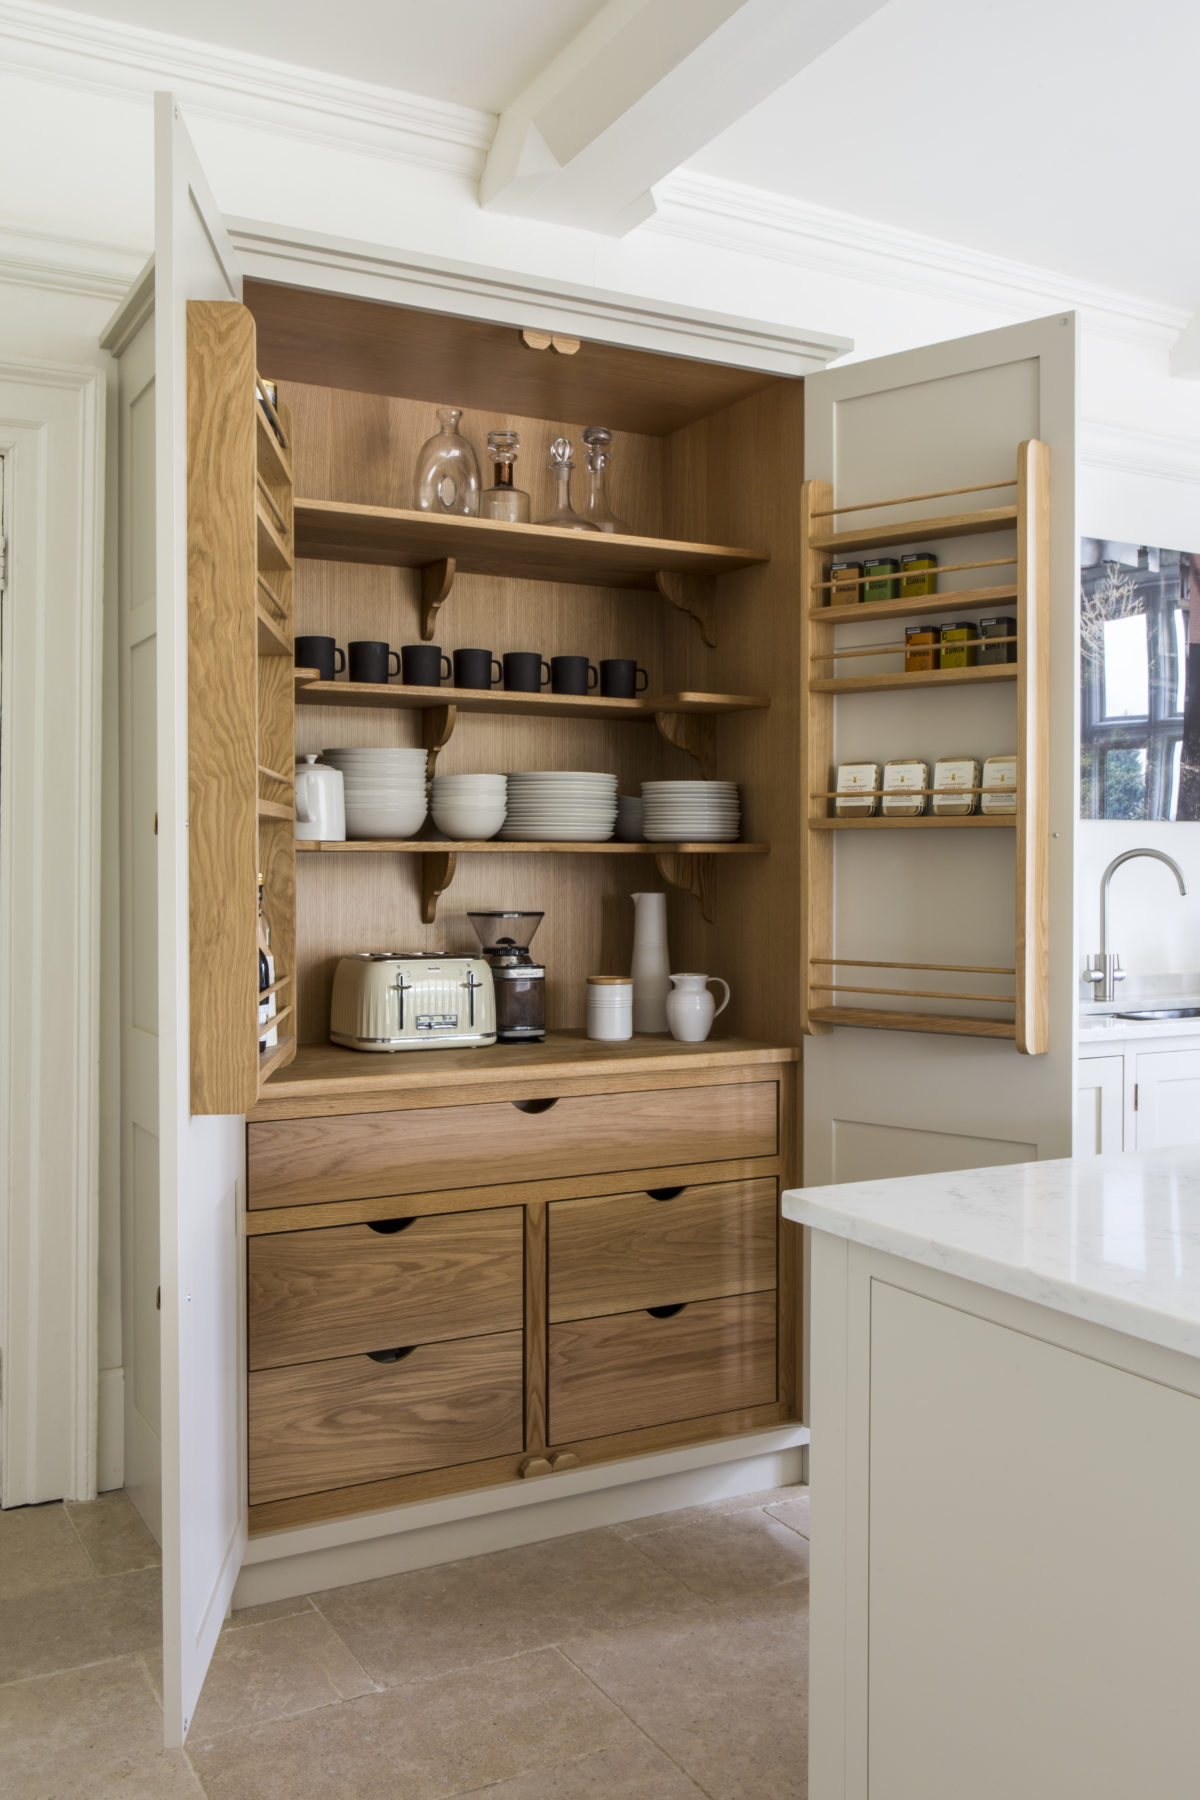 Langstaff-Ellis Luxury Cotswold Kitchen Oak detailing